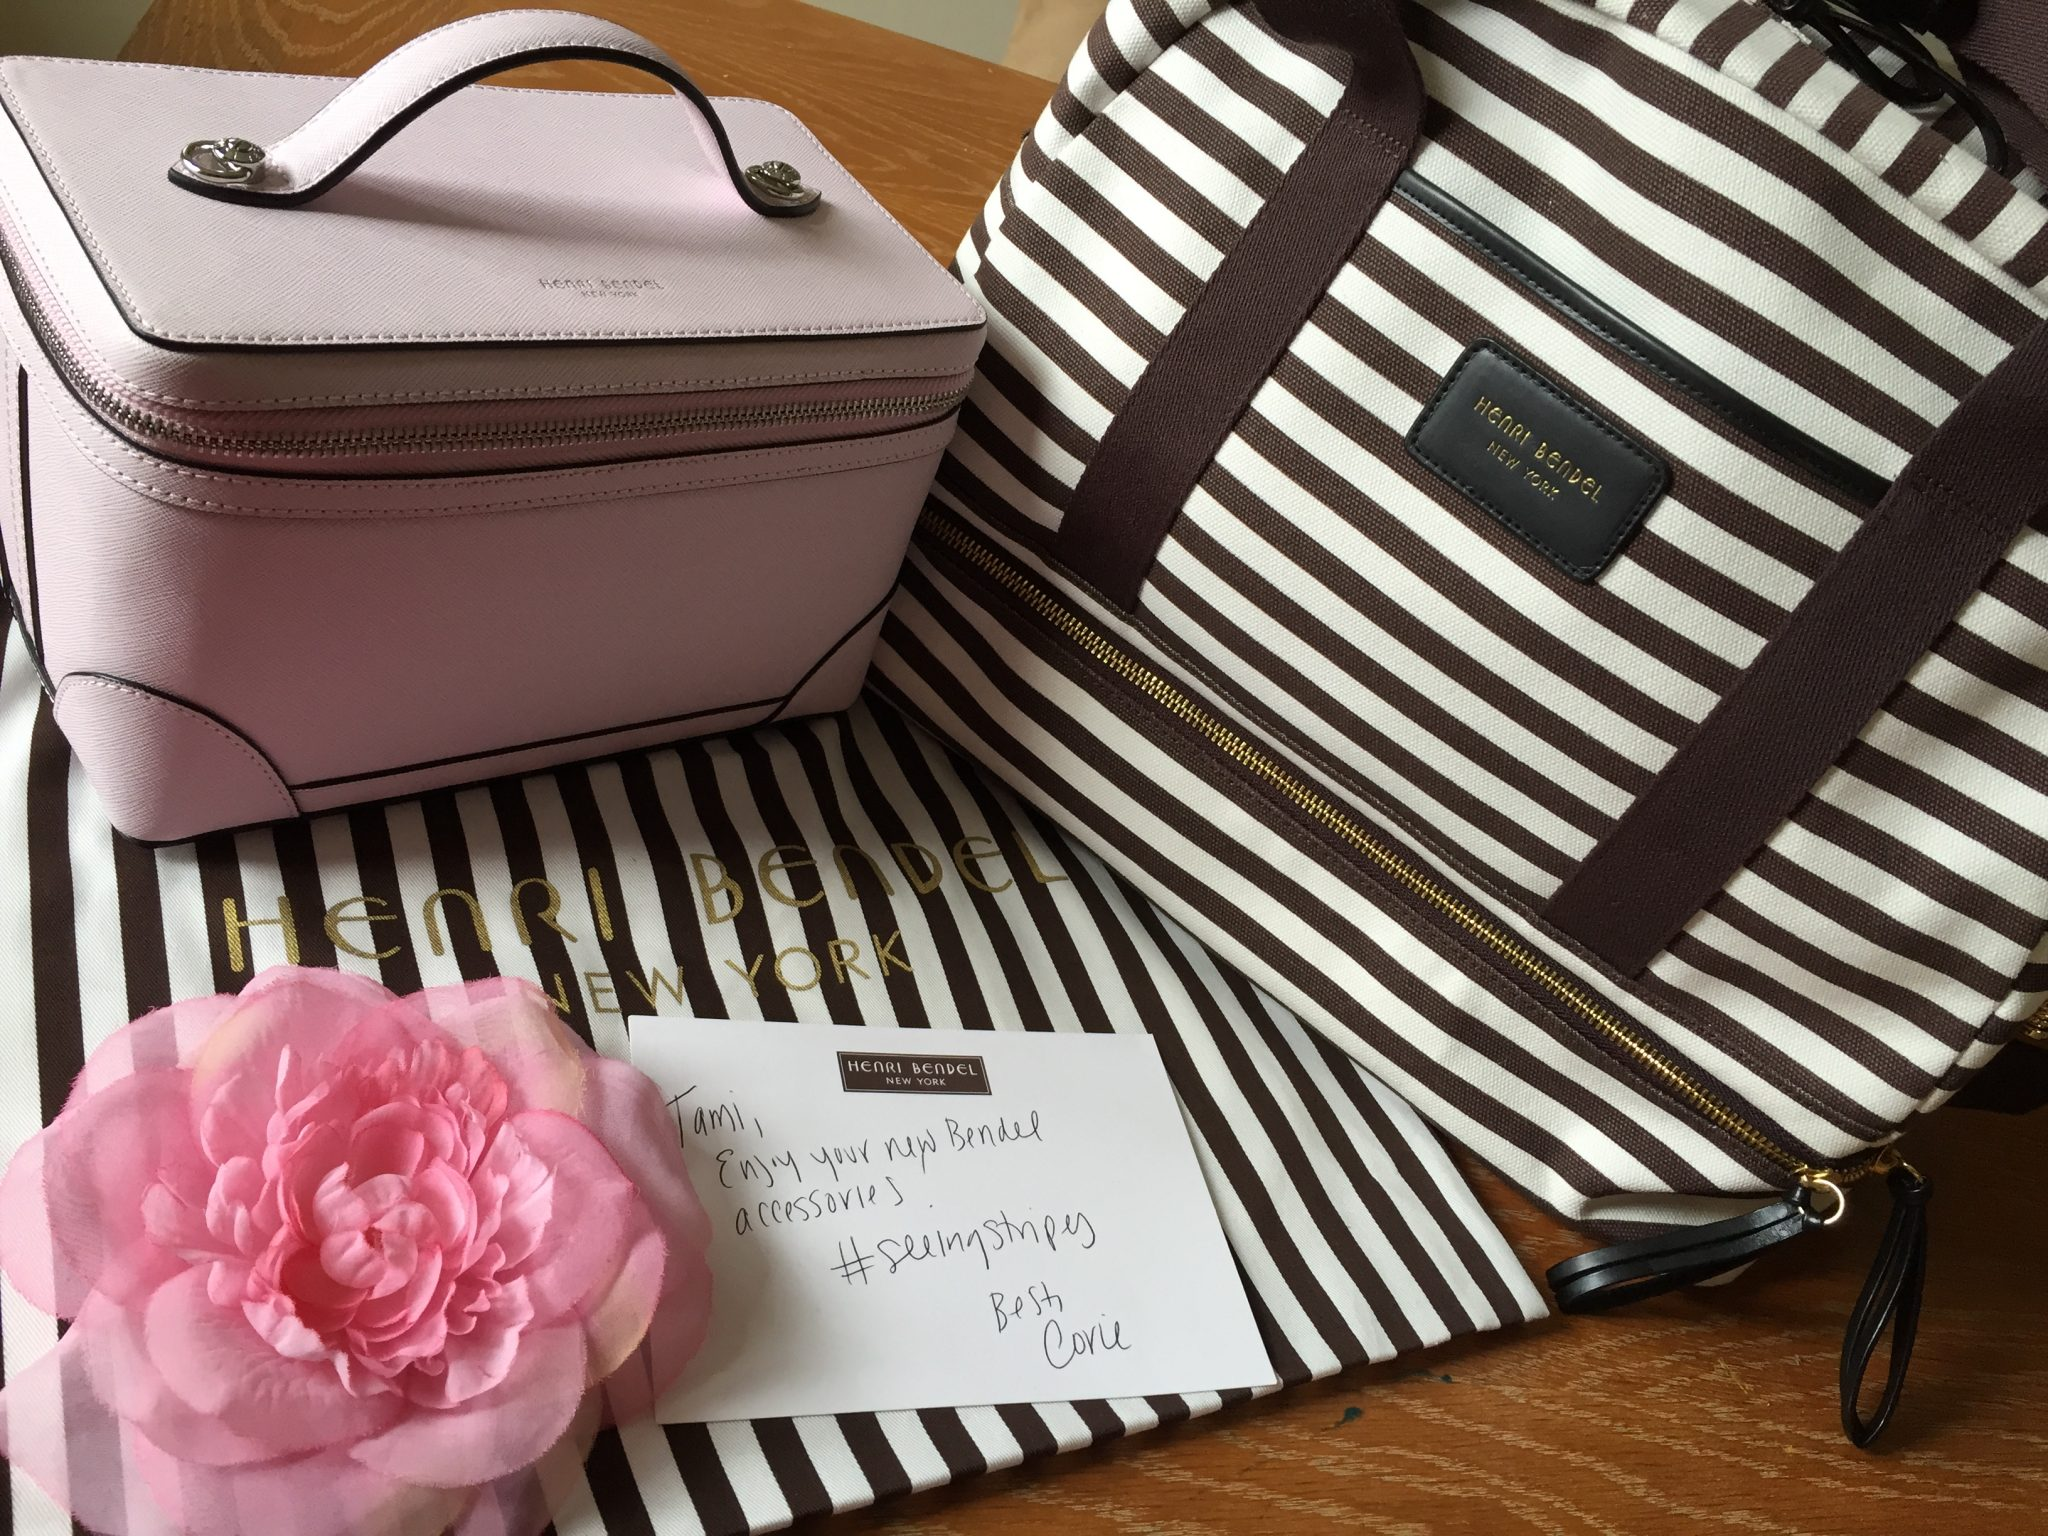 Currently Obsessed With: Henri Bendel Travel Essentials